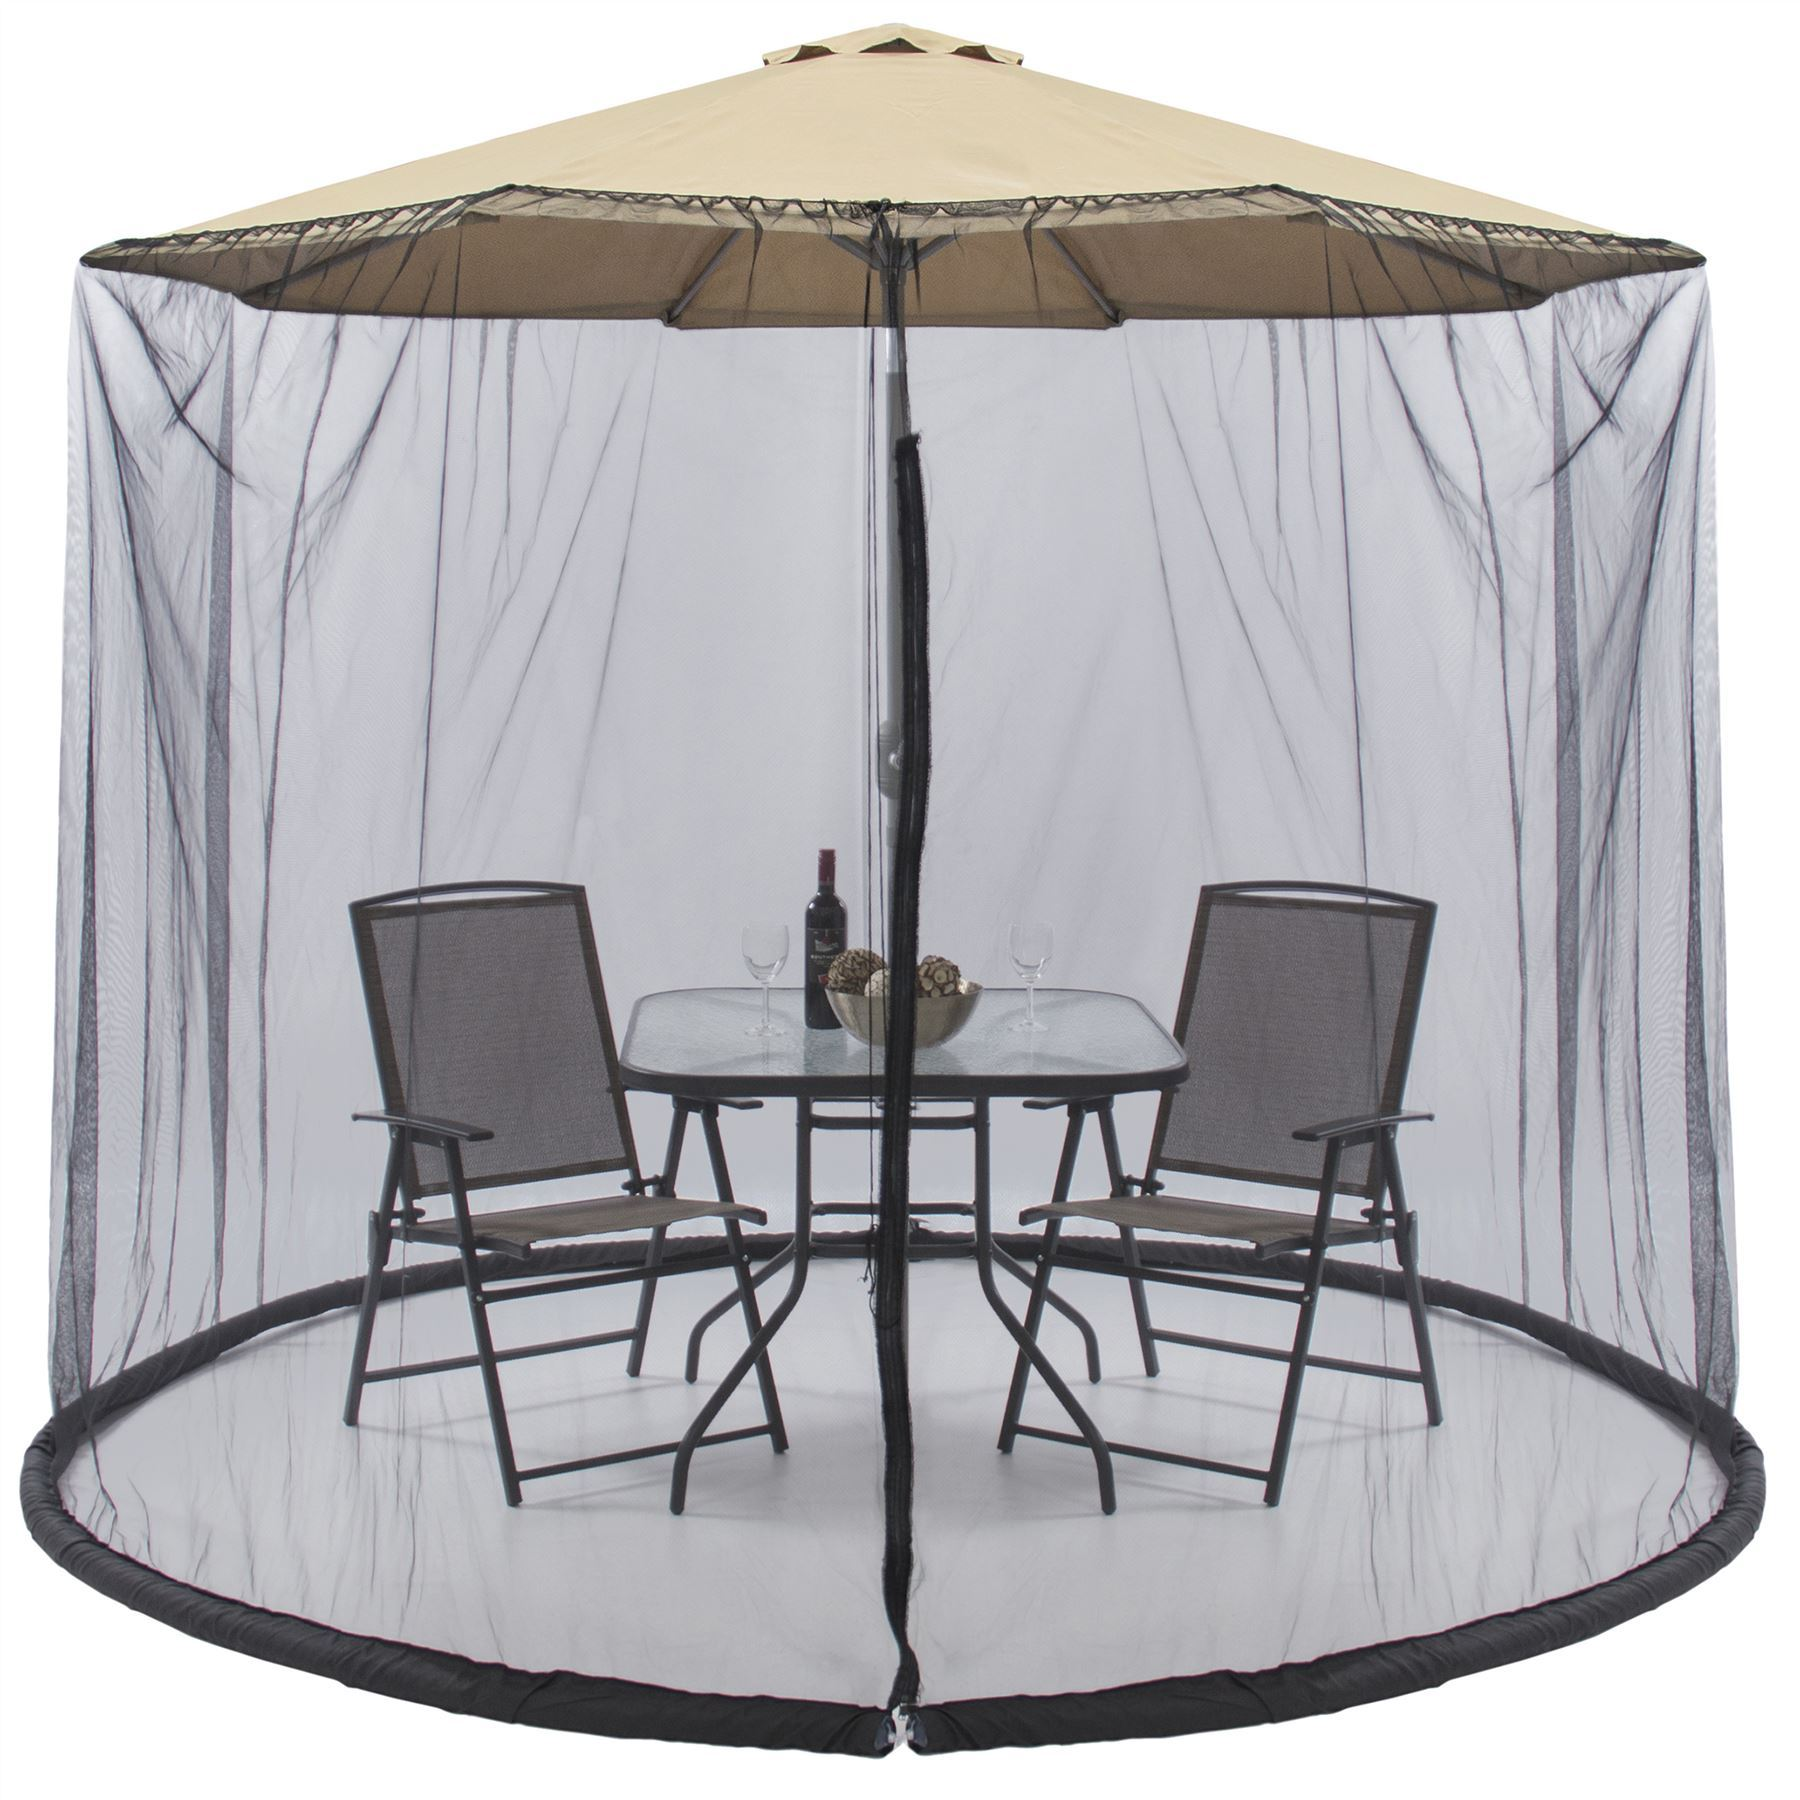 umbrella enclosure all the netting offset cantilever for canopy with buyers answers patio guide square net mosquito